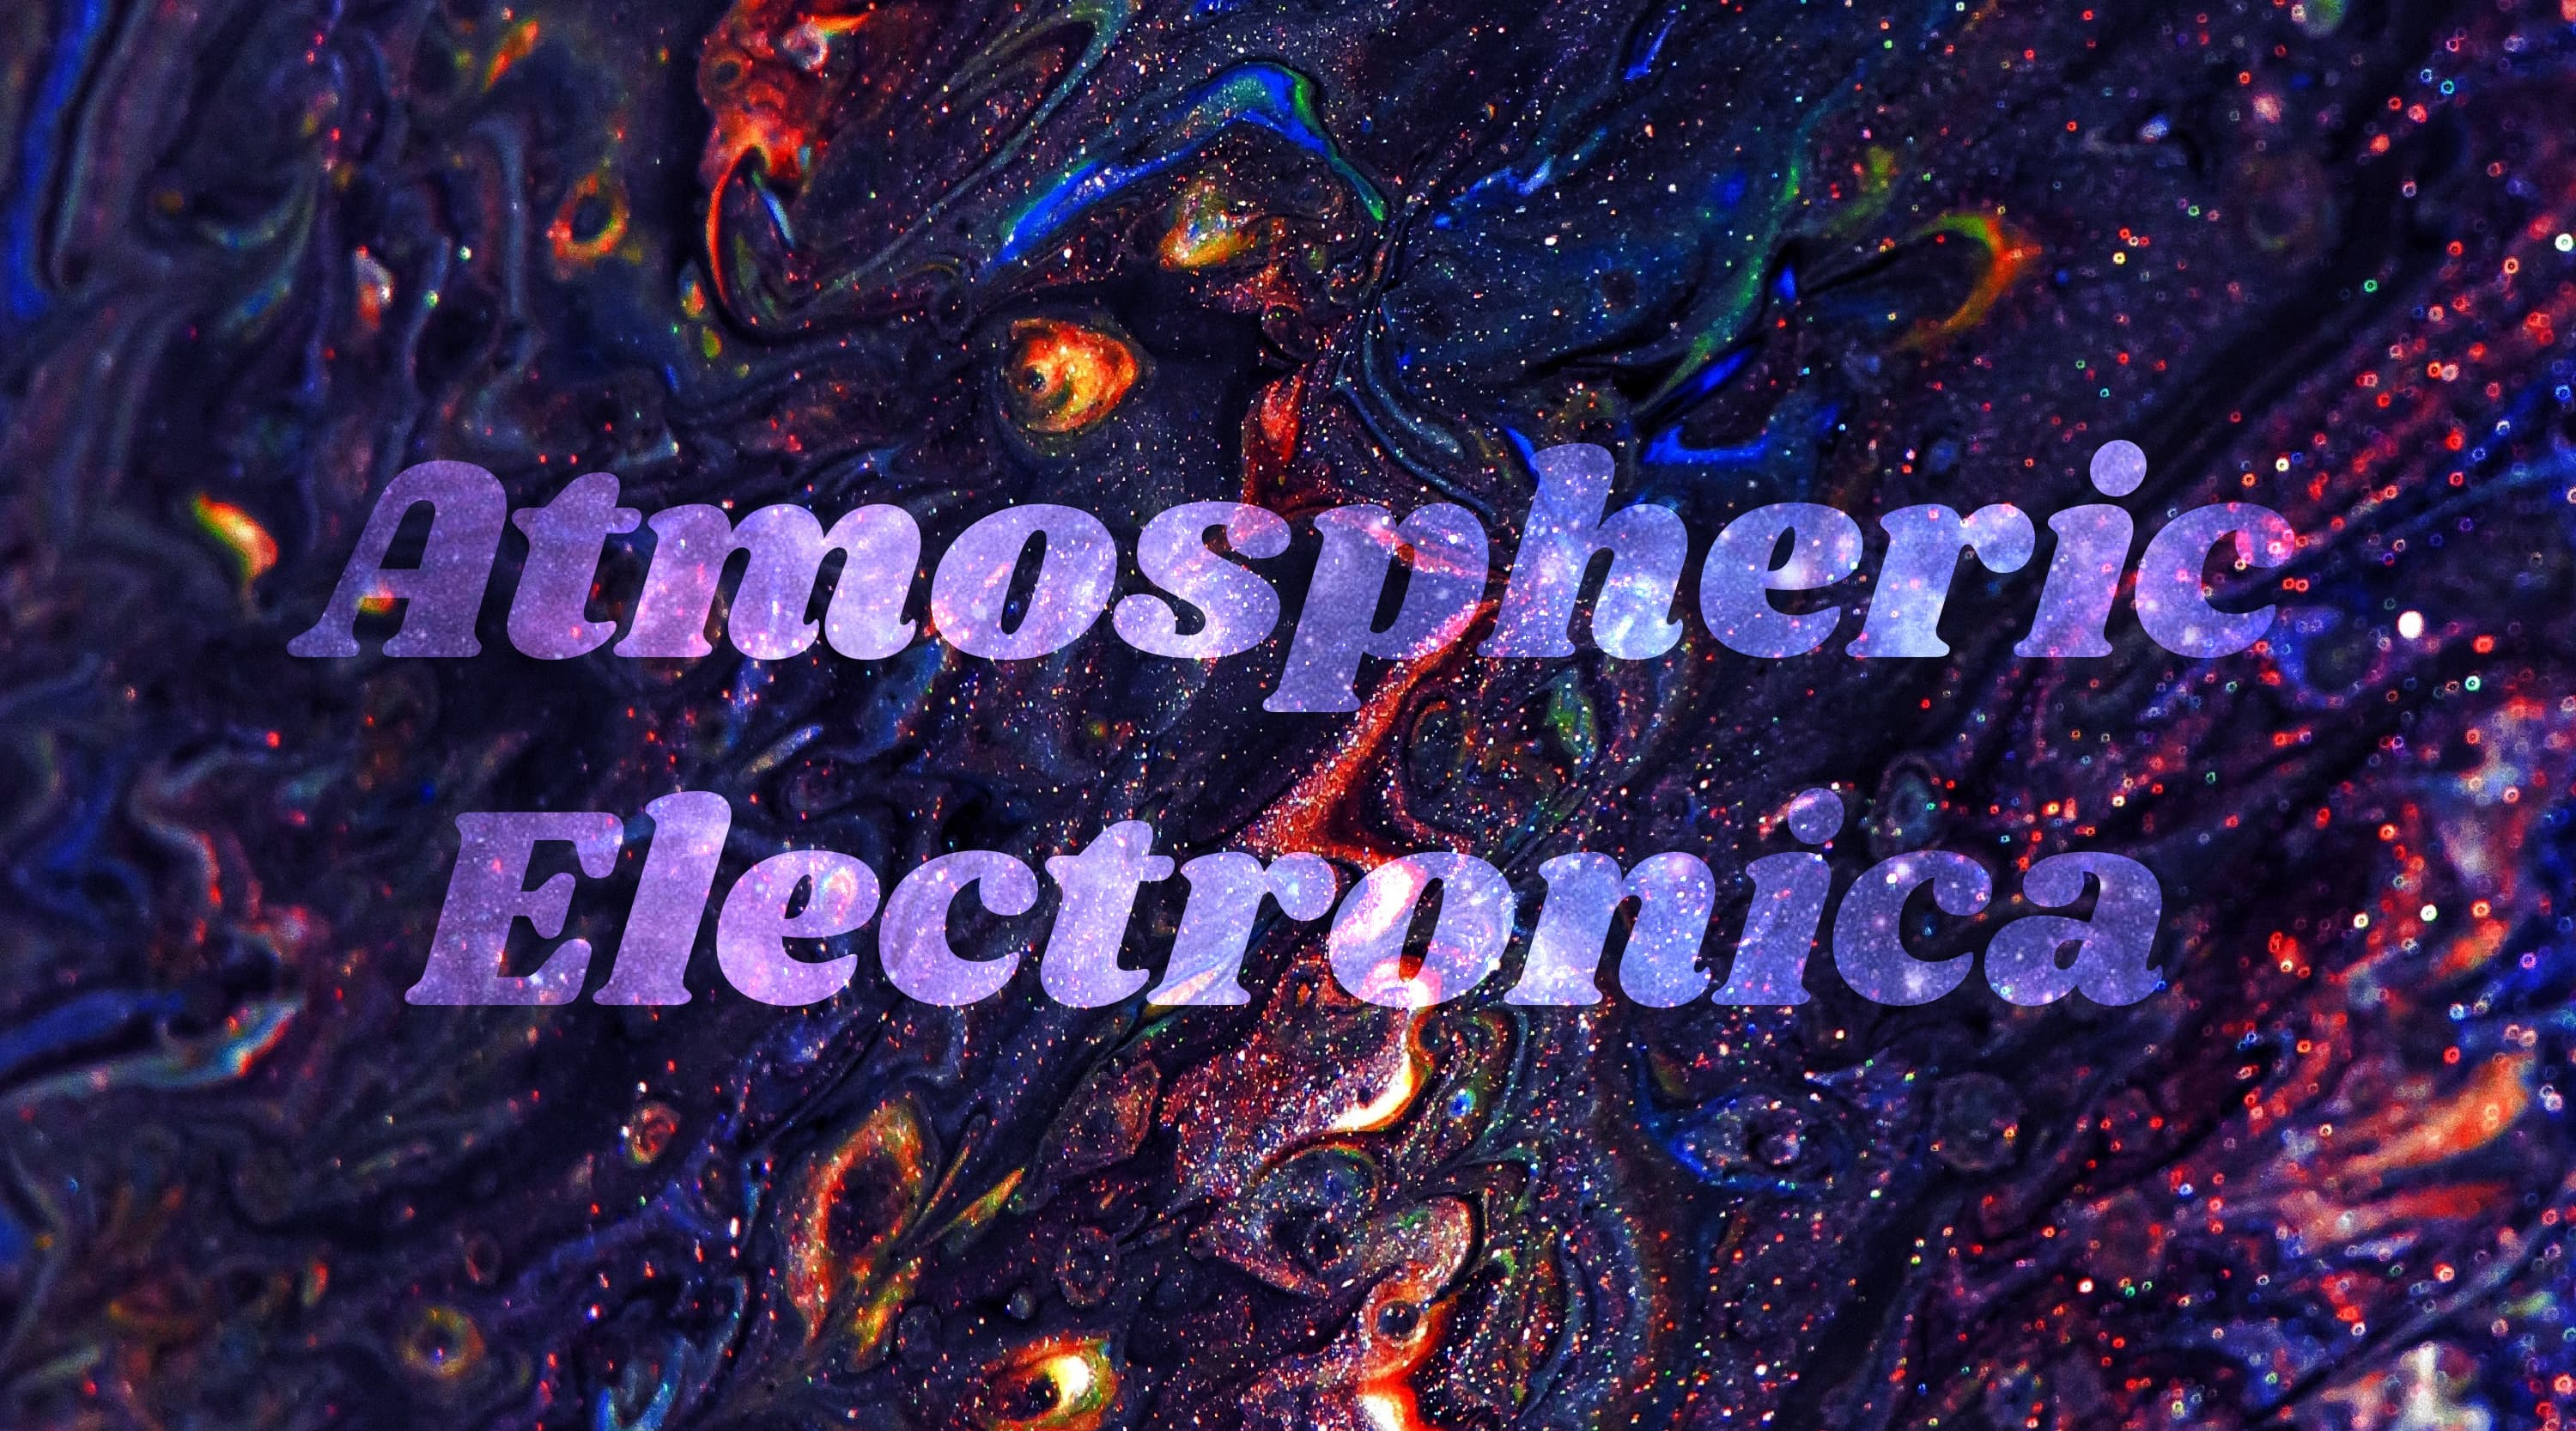 Atmospheric Electronica